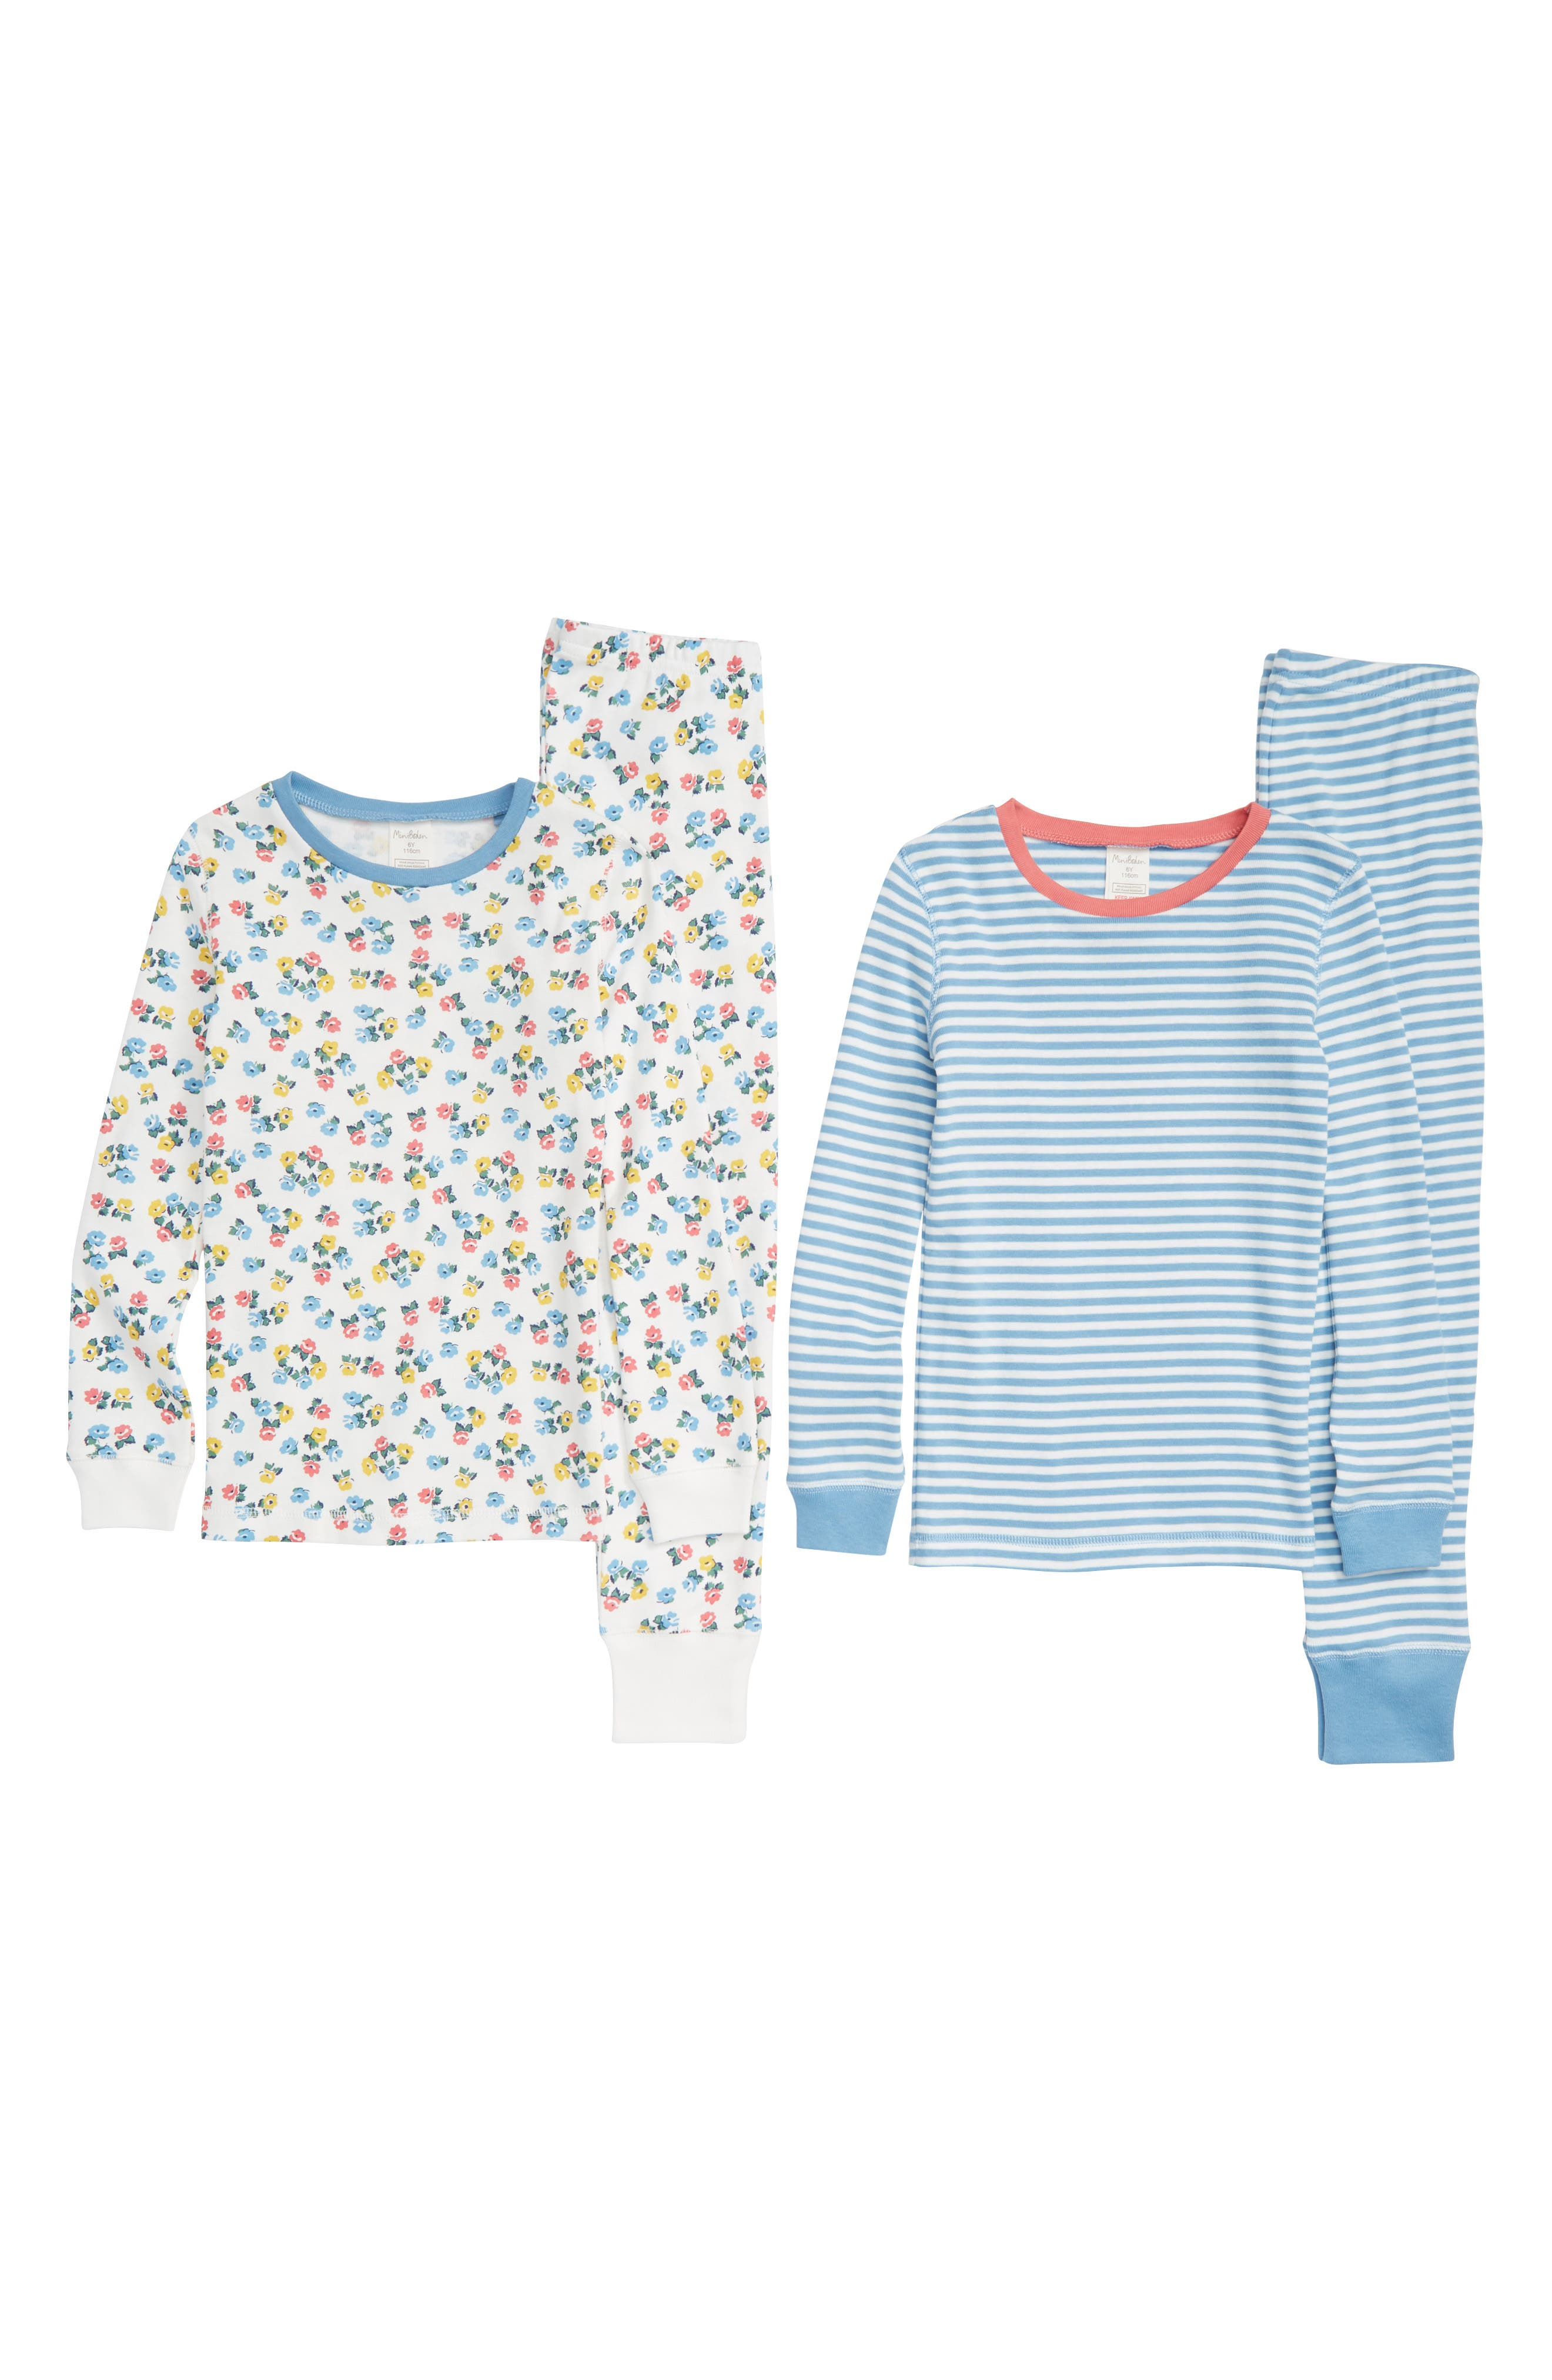 Toddler Girls Mini Boden 2Pack Fitted TwoPiece Pajamas Size 3Y  Ivory